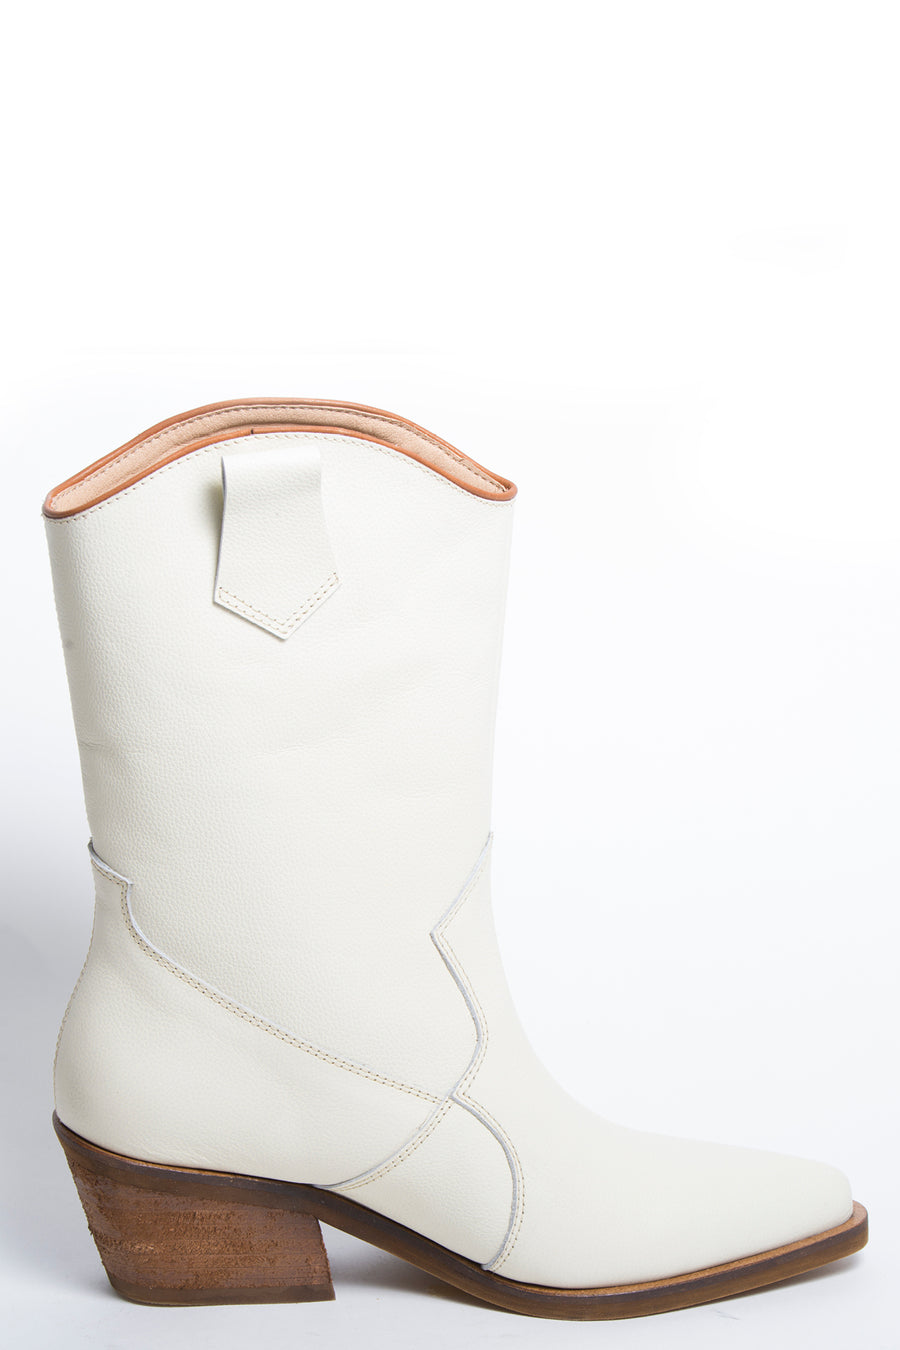 Santa Monica western inspired booties ivory leather